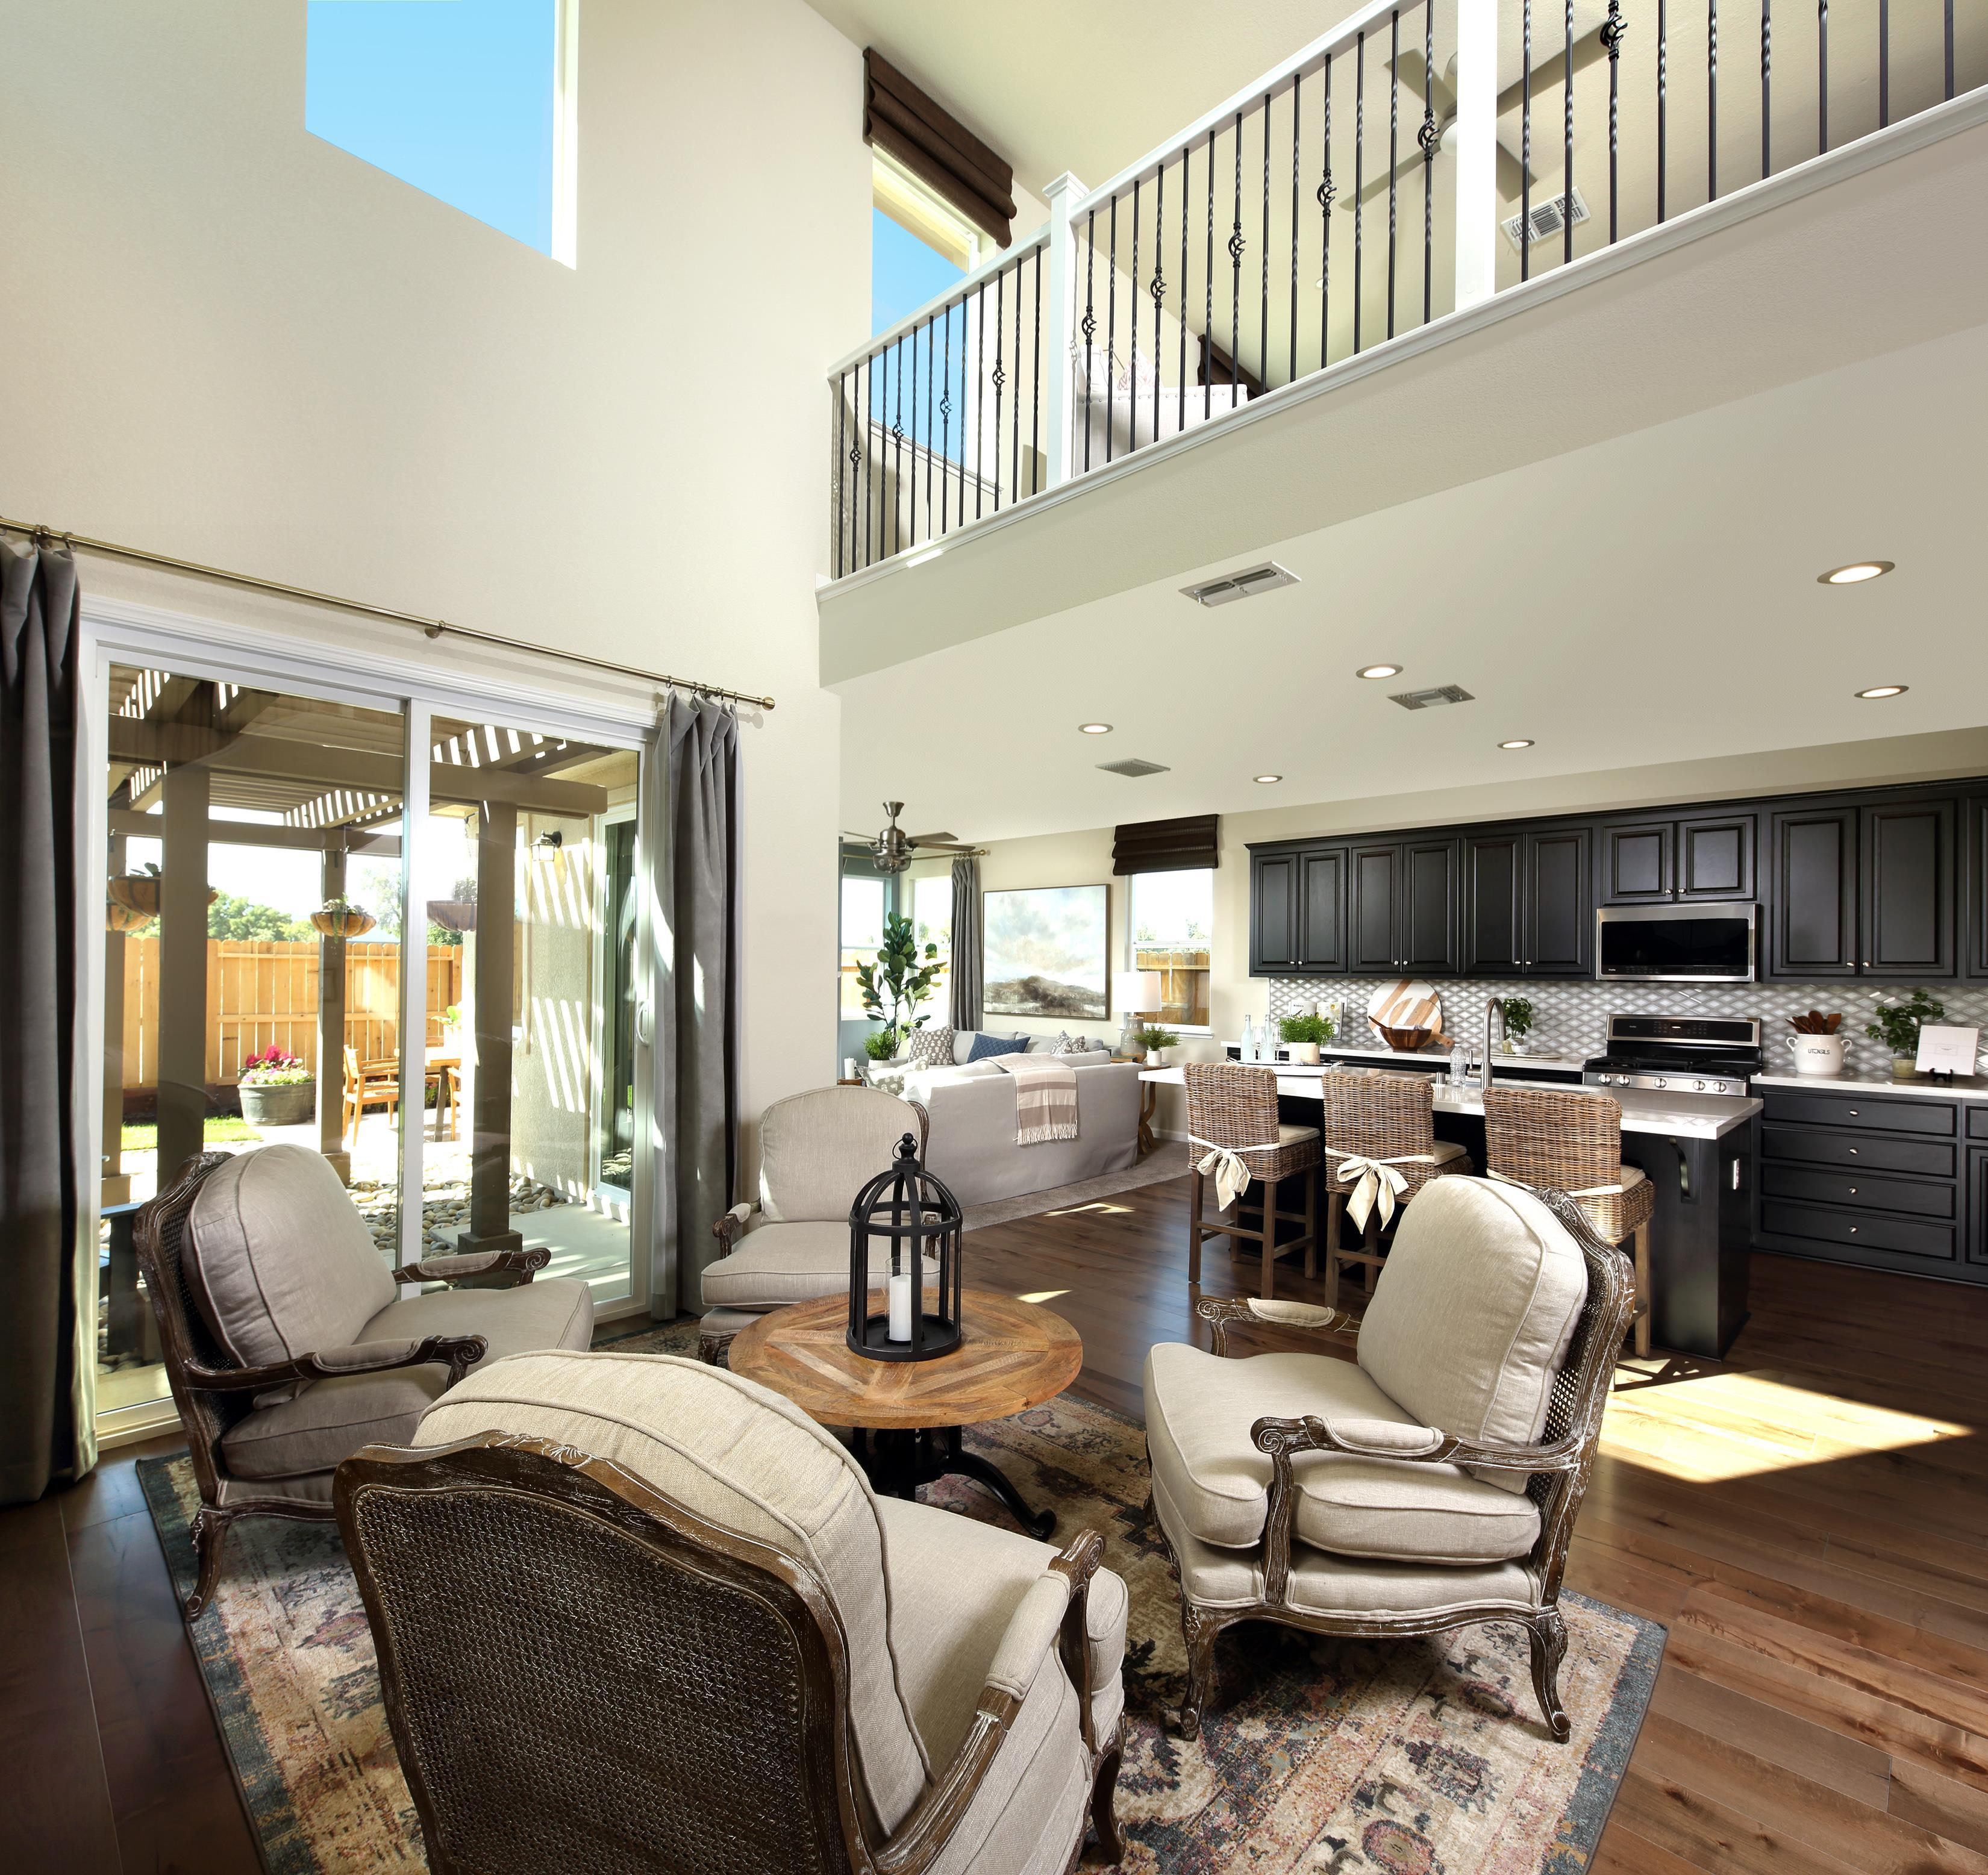 Living Area featured in THE UPTOWN By Florsheim Homes in Modesto, CA